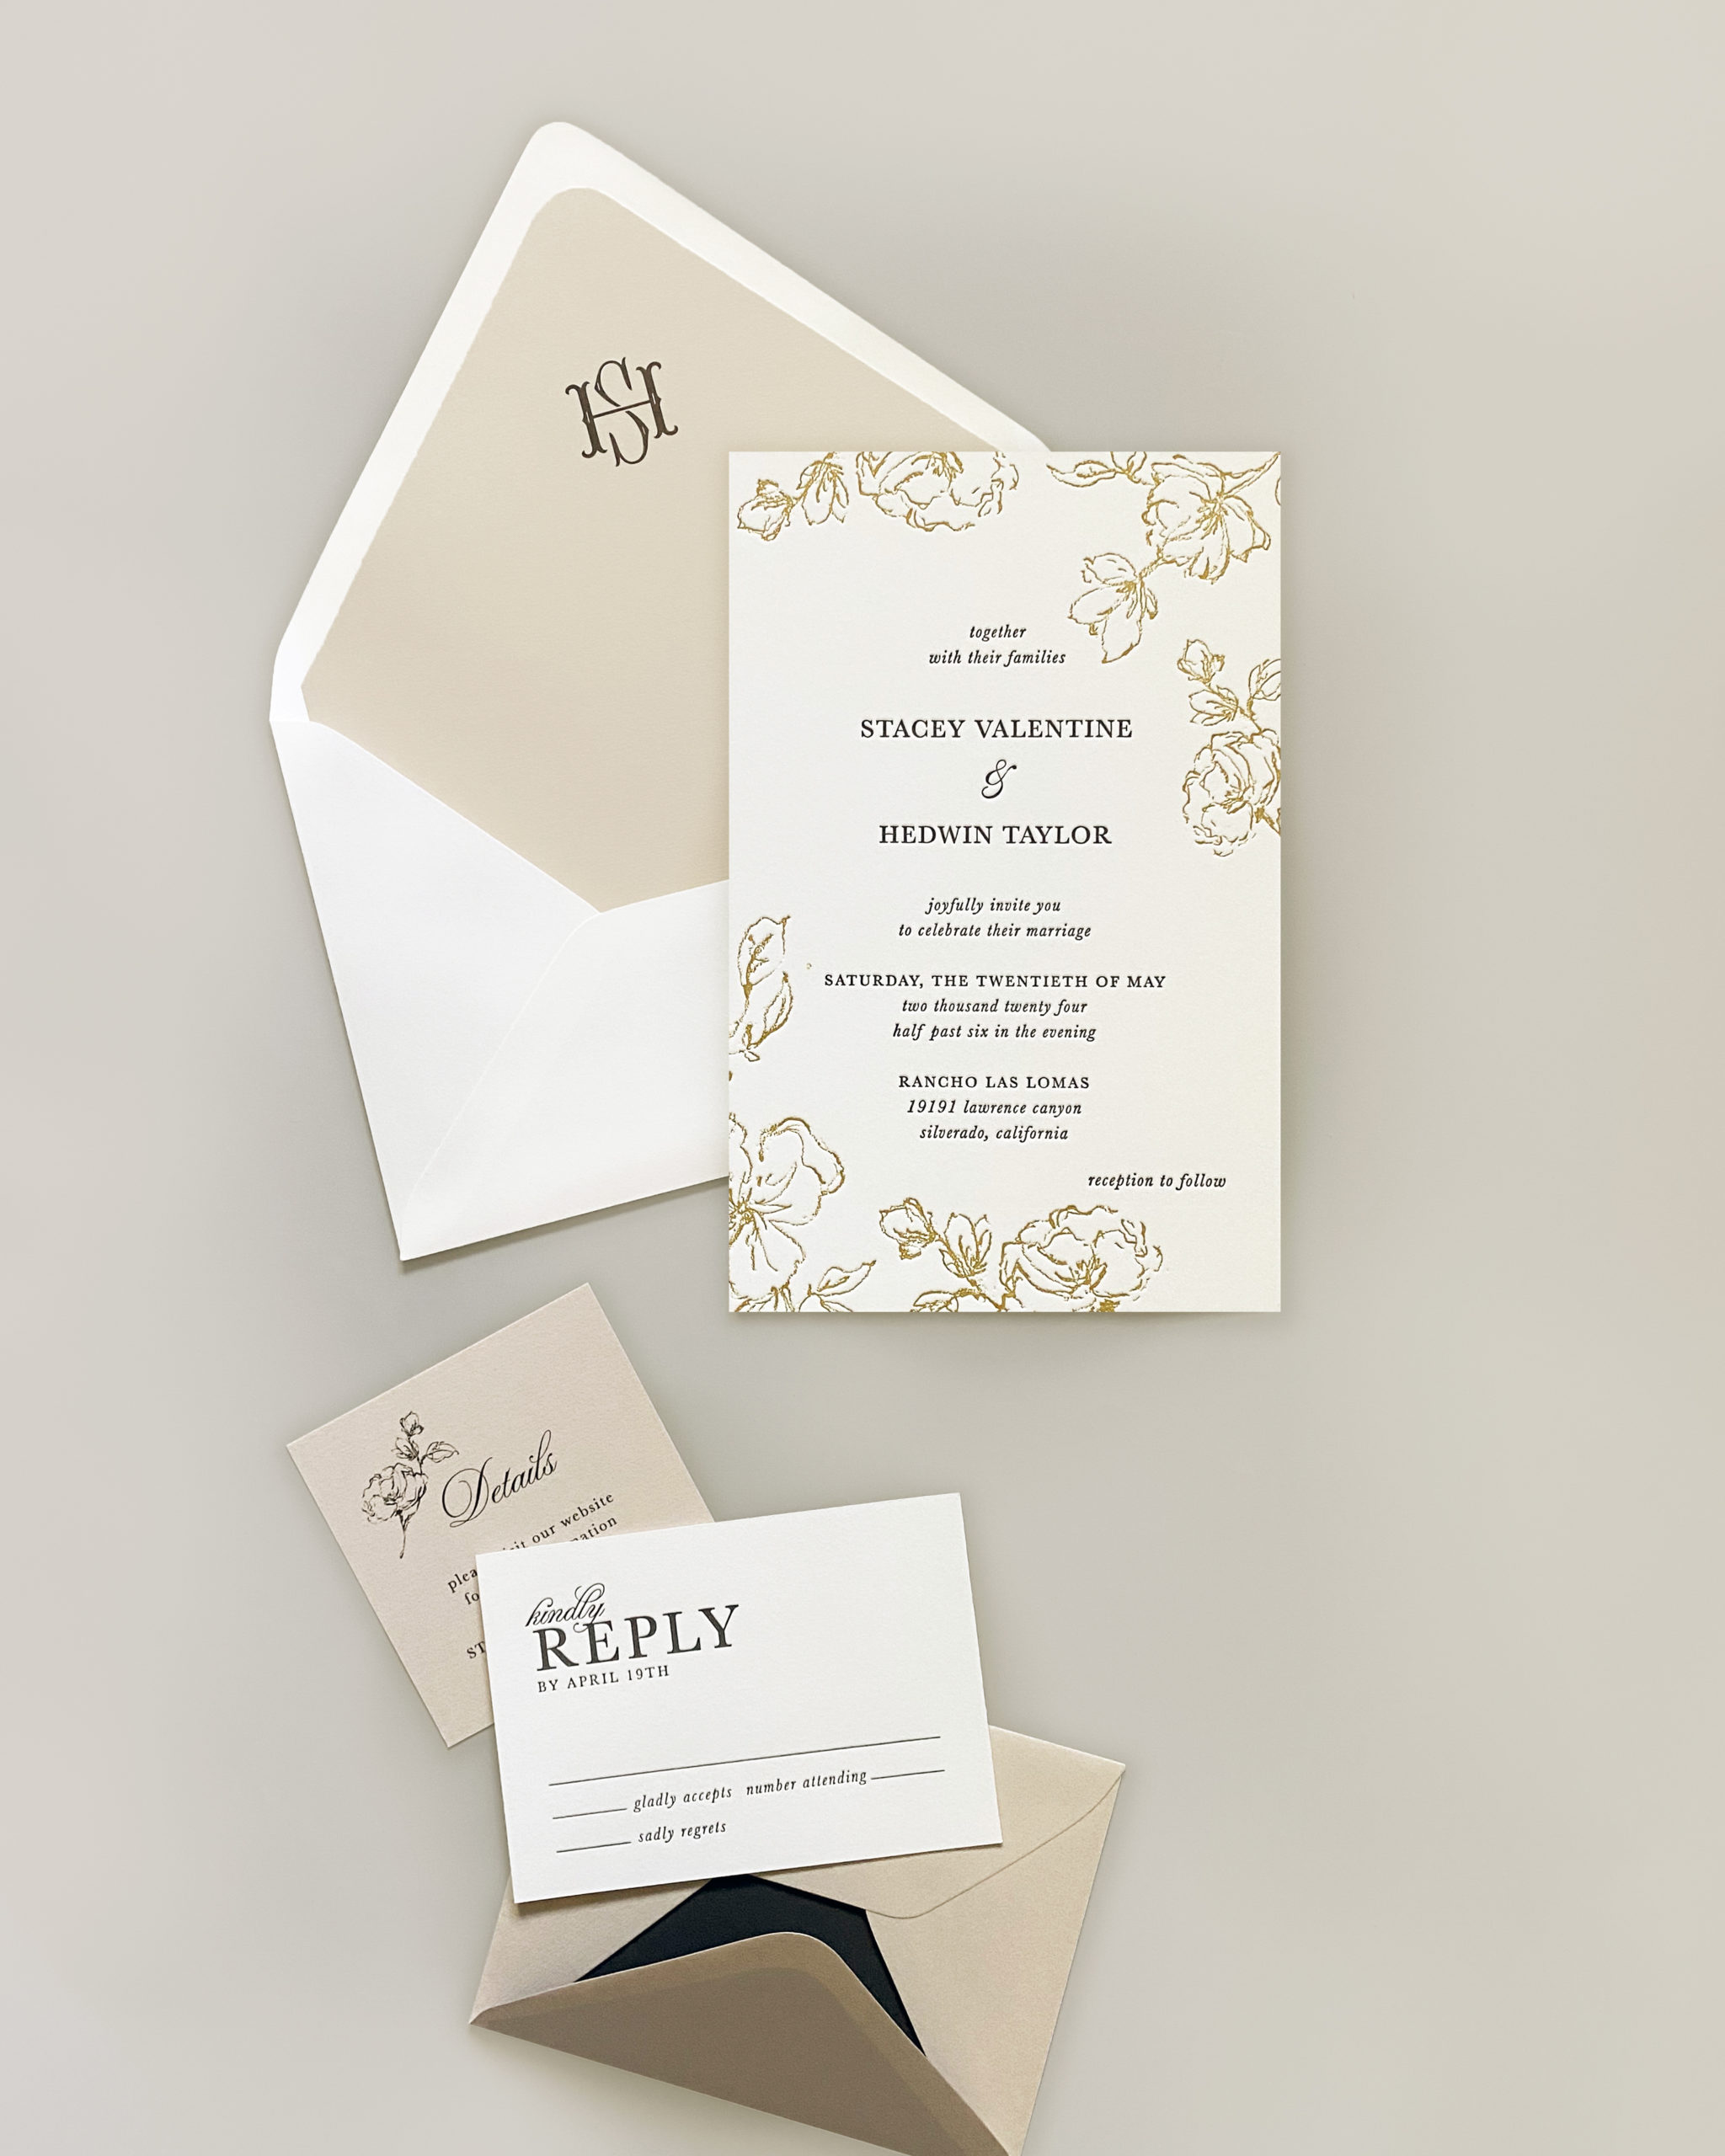 Modern 2-color letterpress wedding invitation features a border of sketched florals and a monogrammed envelope liner.  The entire Smitten on Paper collection is available at Staccato in the DC metro area.